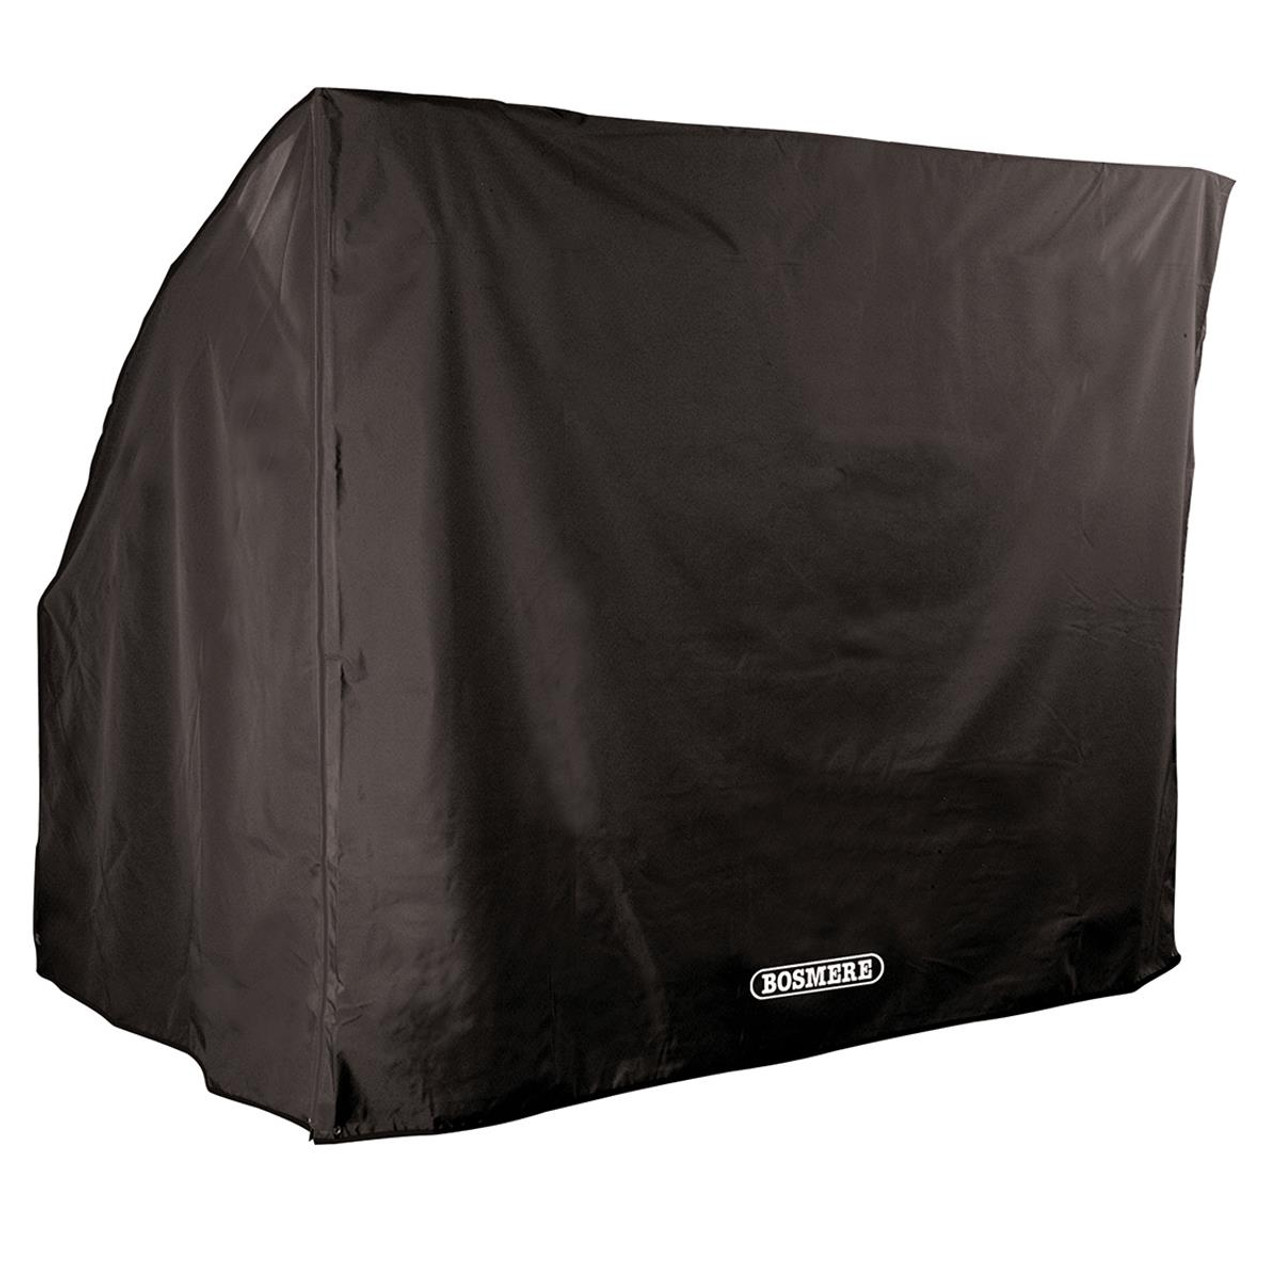 Bosmere Protector 6000 Hammock Cover 3 Seater